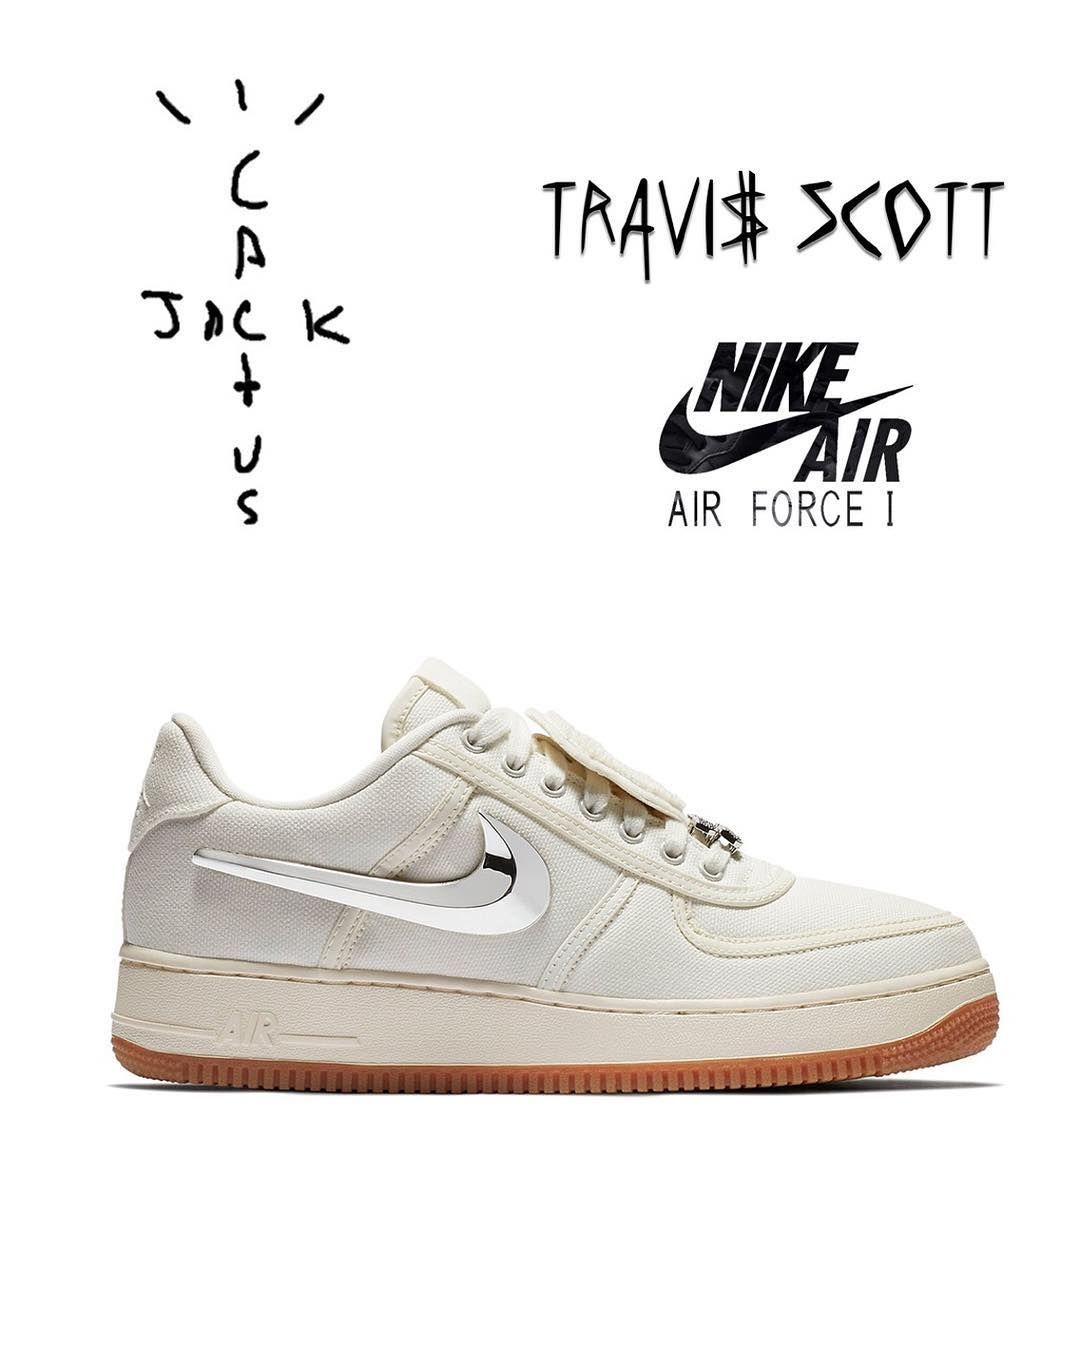 info for 0f231 631ff Travis Scott Nike Air Force 1 Cactus Jack in Sail finally releases on  August 10th . Cop or Pass